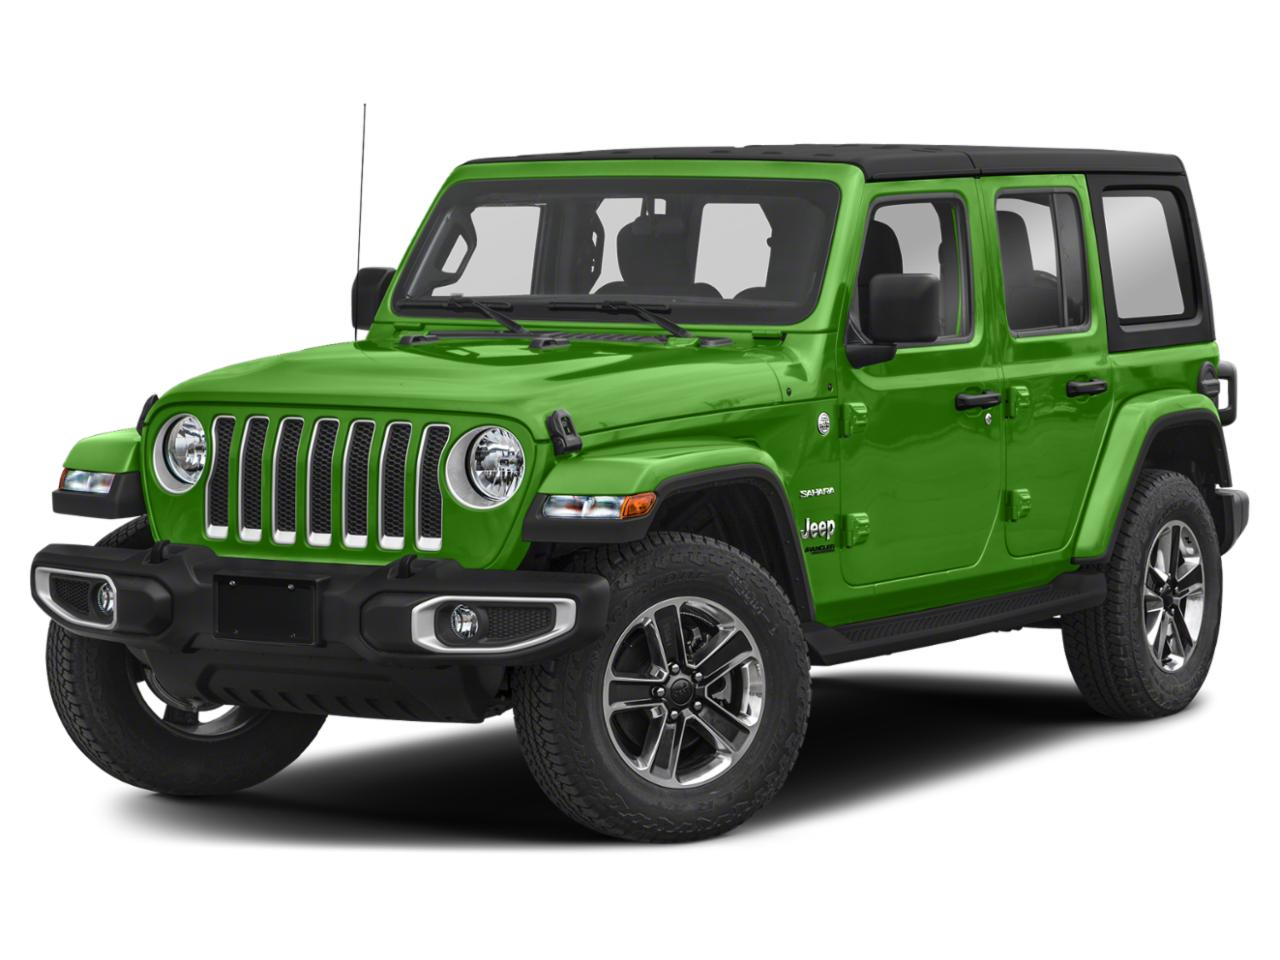 2018 Jeep Wrangler Unlimited Vehicle Photo in Merrillville, IN 46410